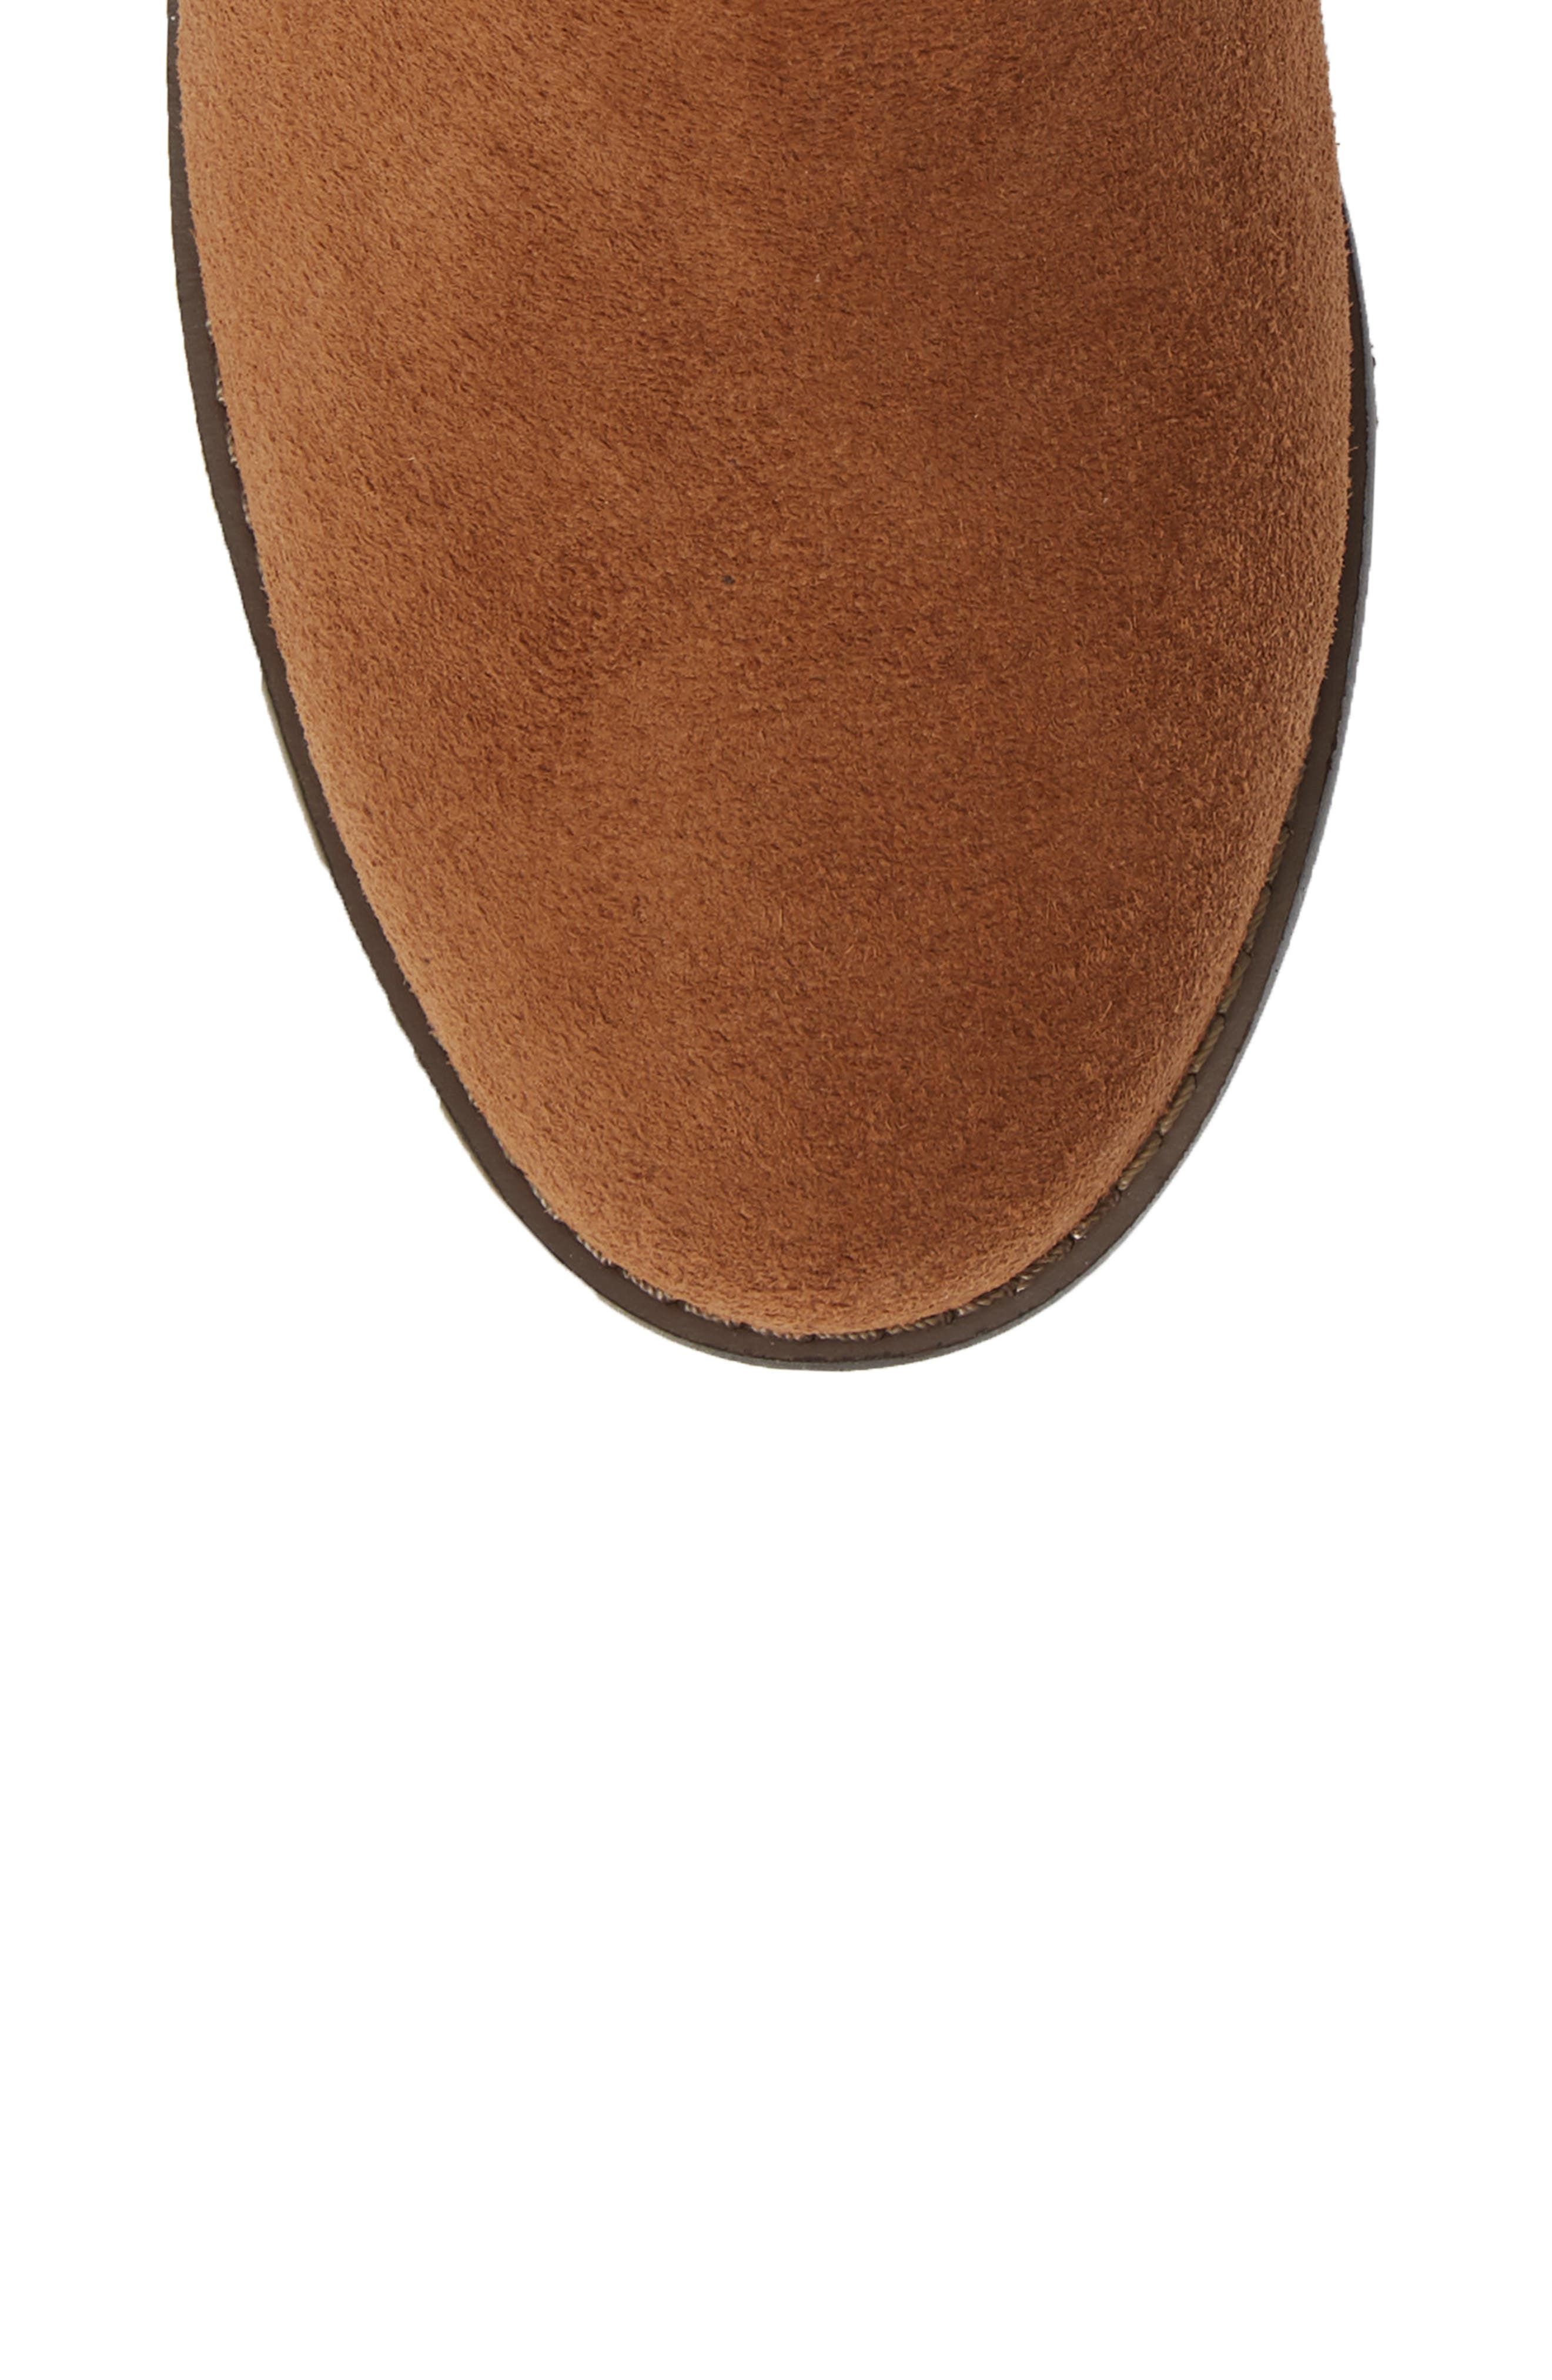 Kanela Low Slouchy Bootie,                             Alternate thumbnail 5, color,                             TOFFEE SUEDE